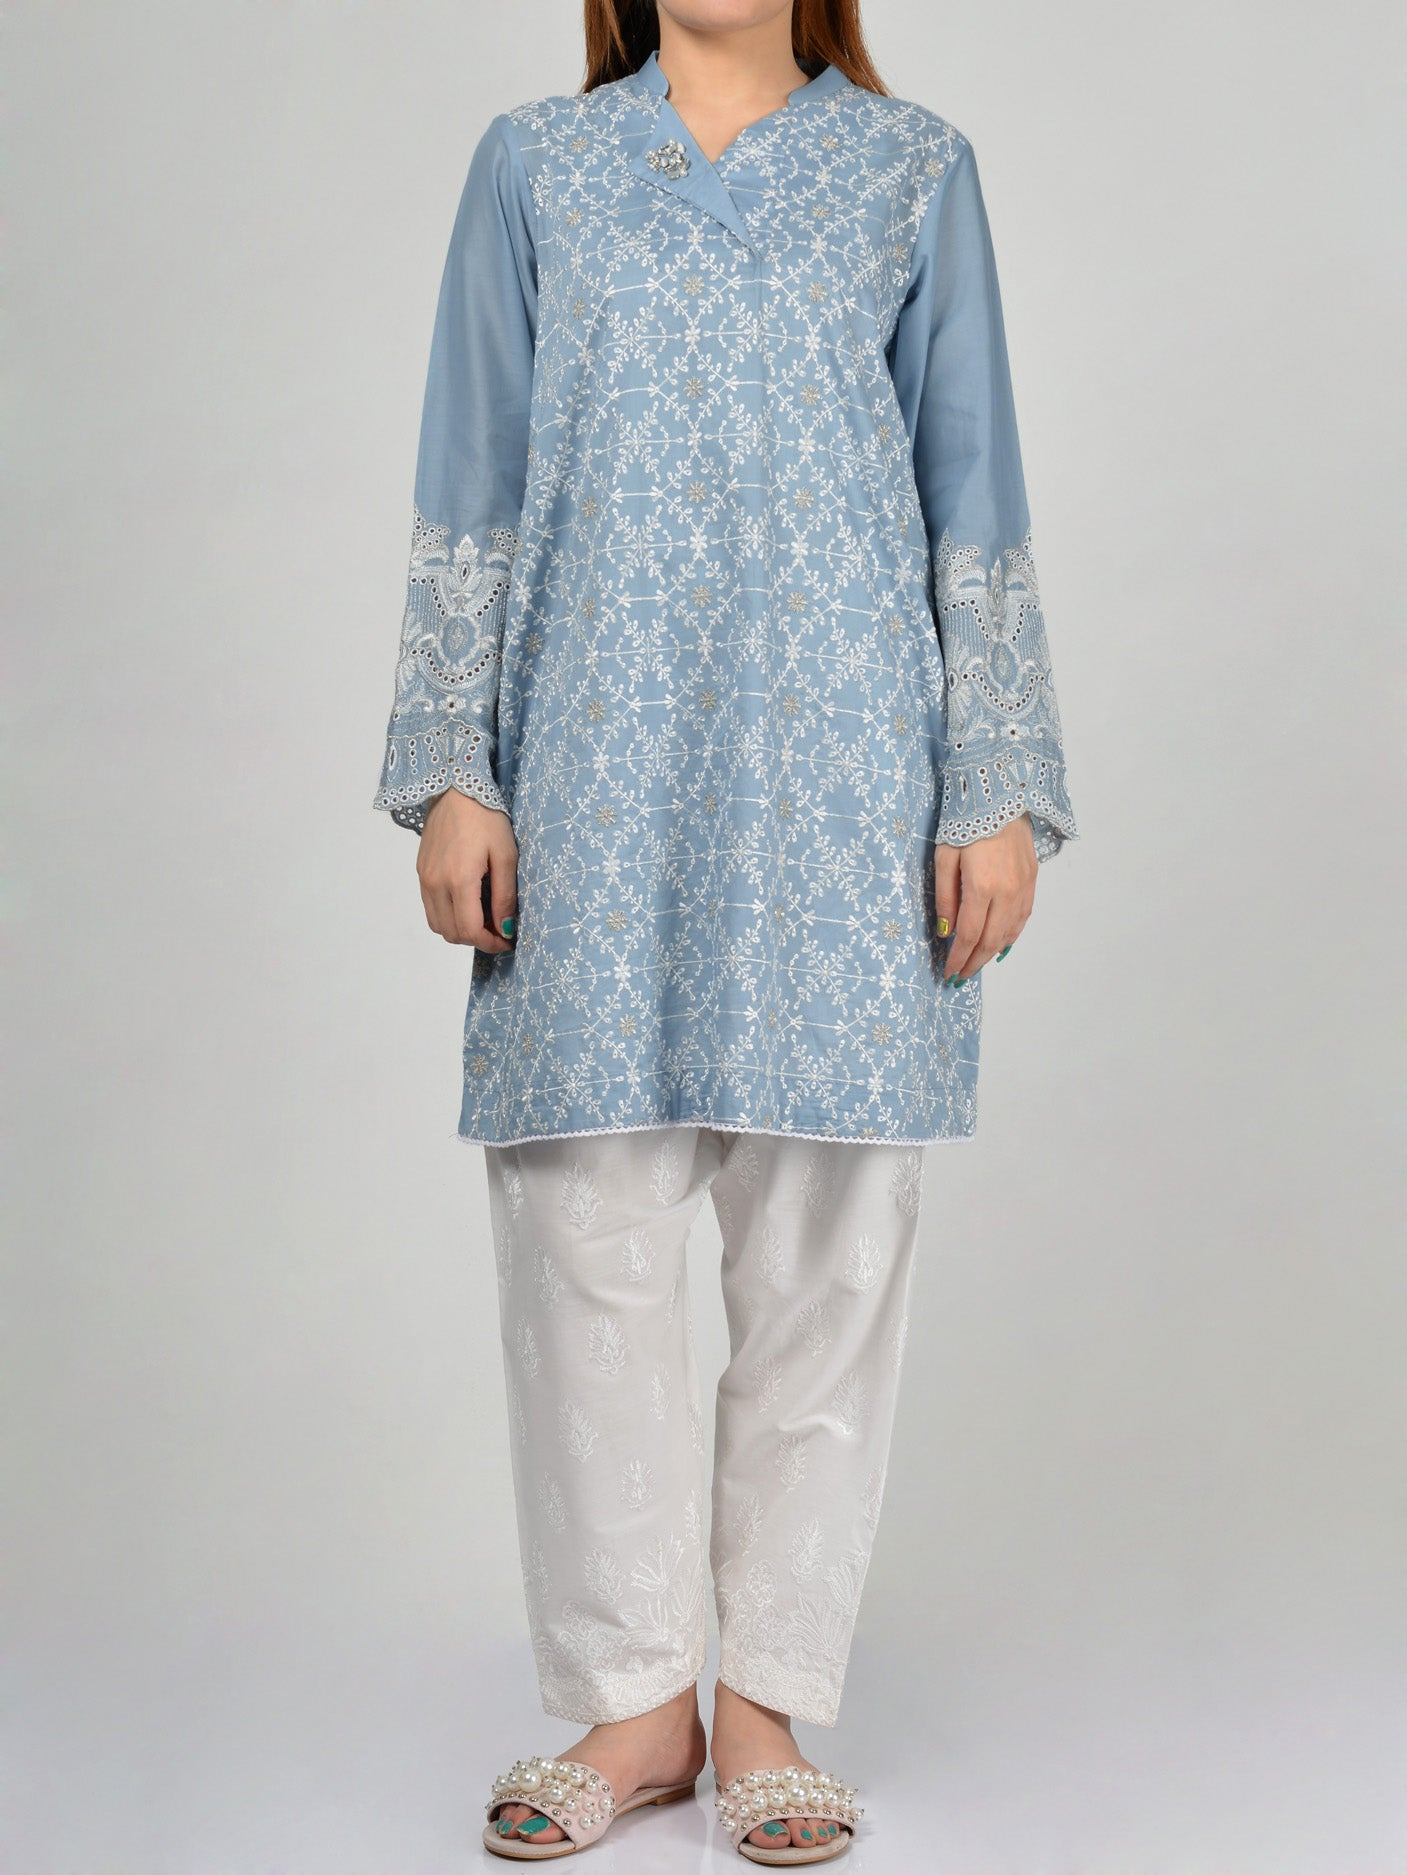 Embroidered Lawn Shirt Online P0090 Limelight